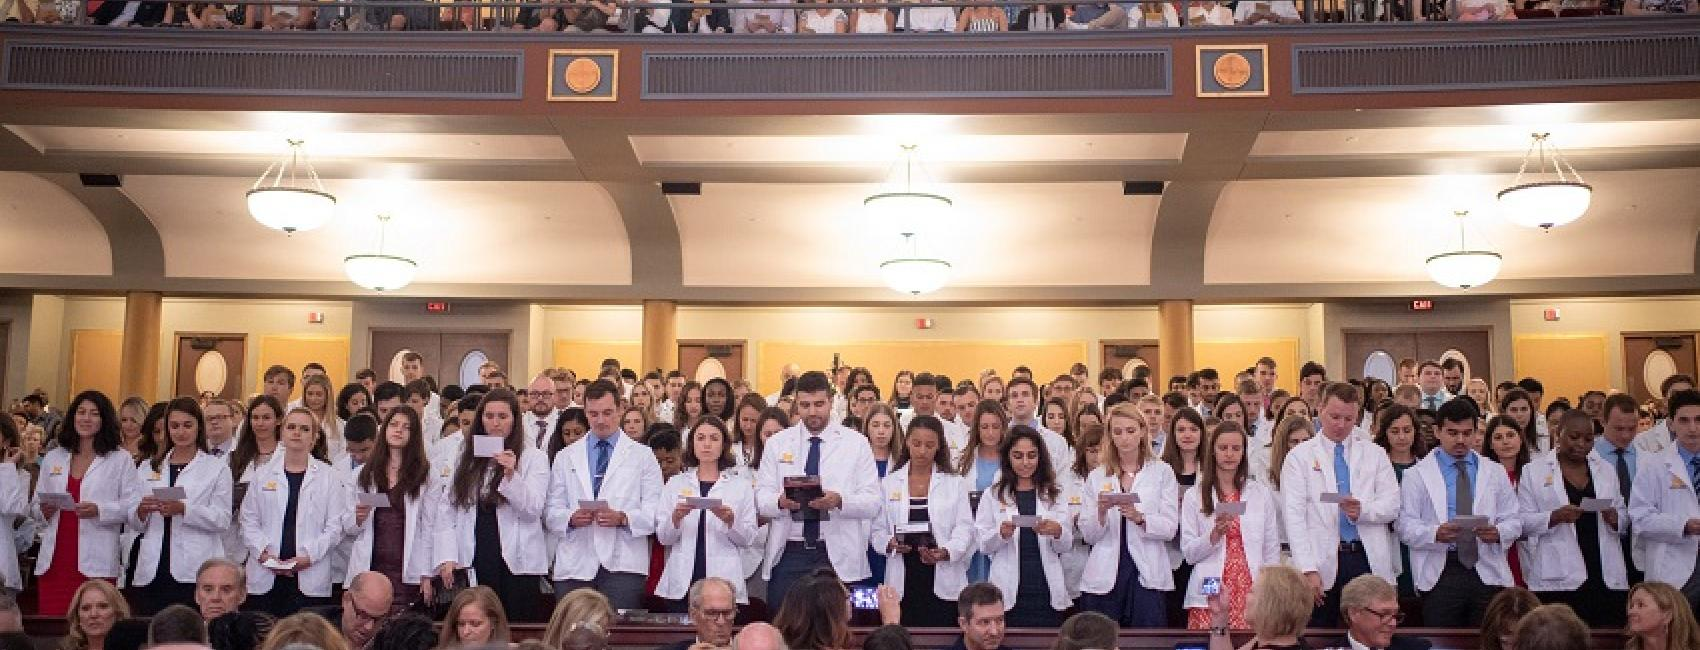 Incoming students with their white coats